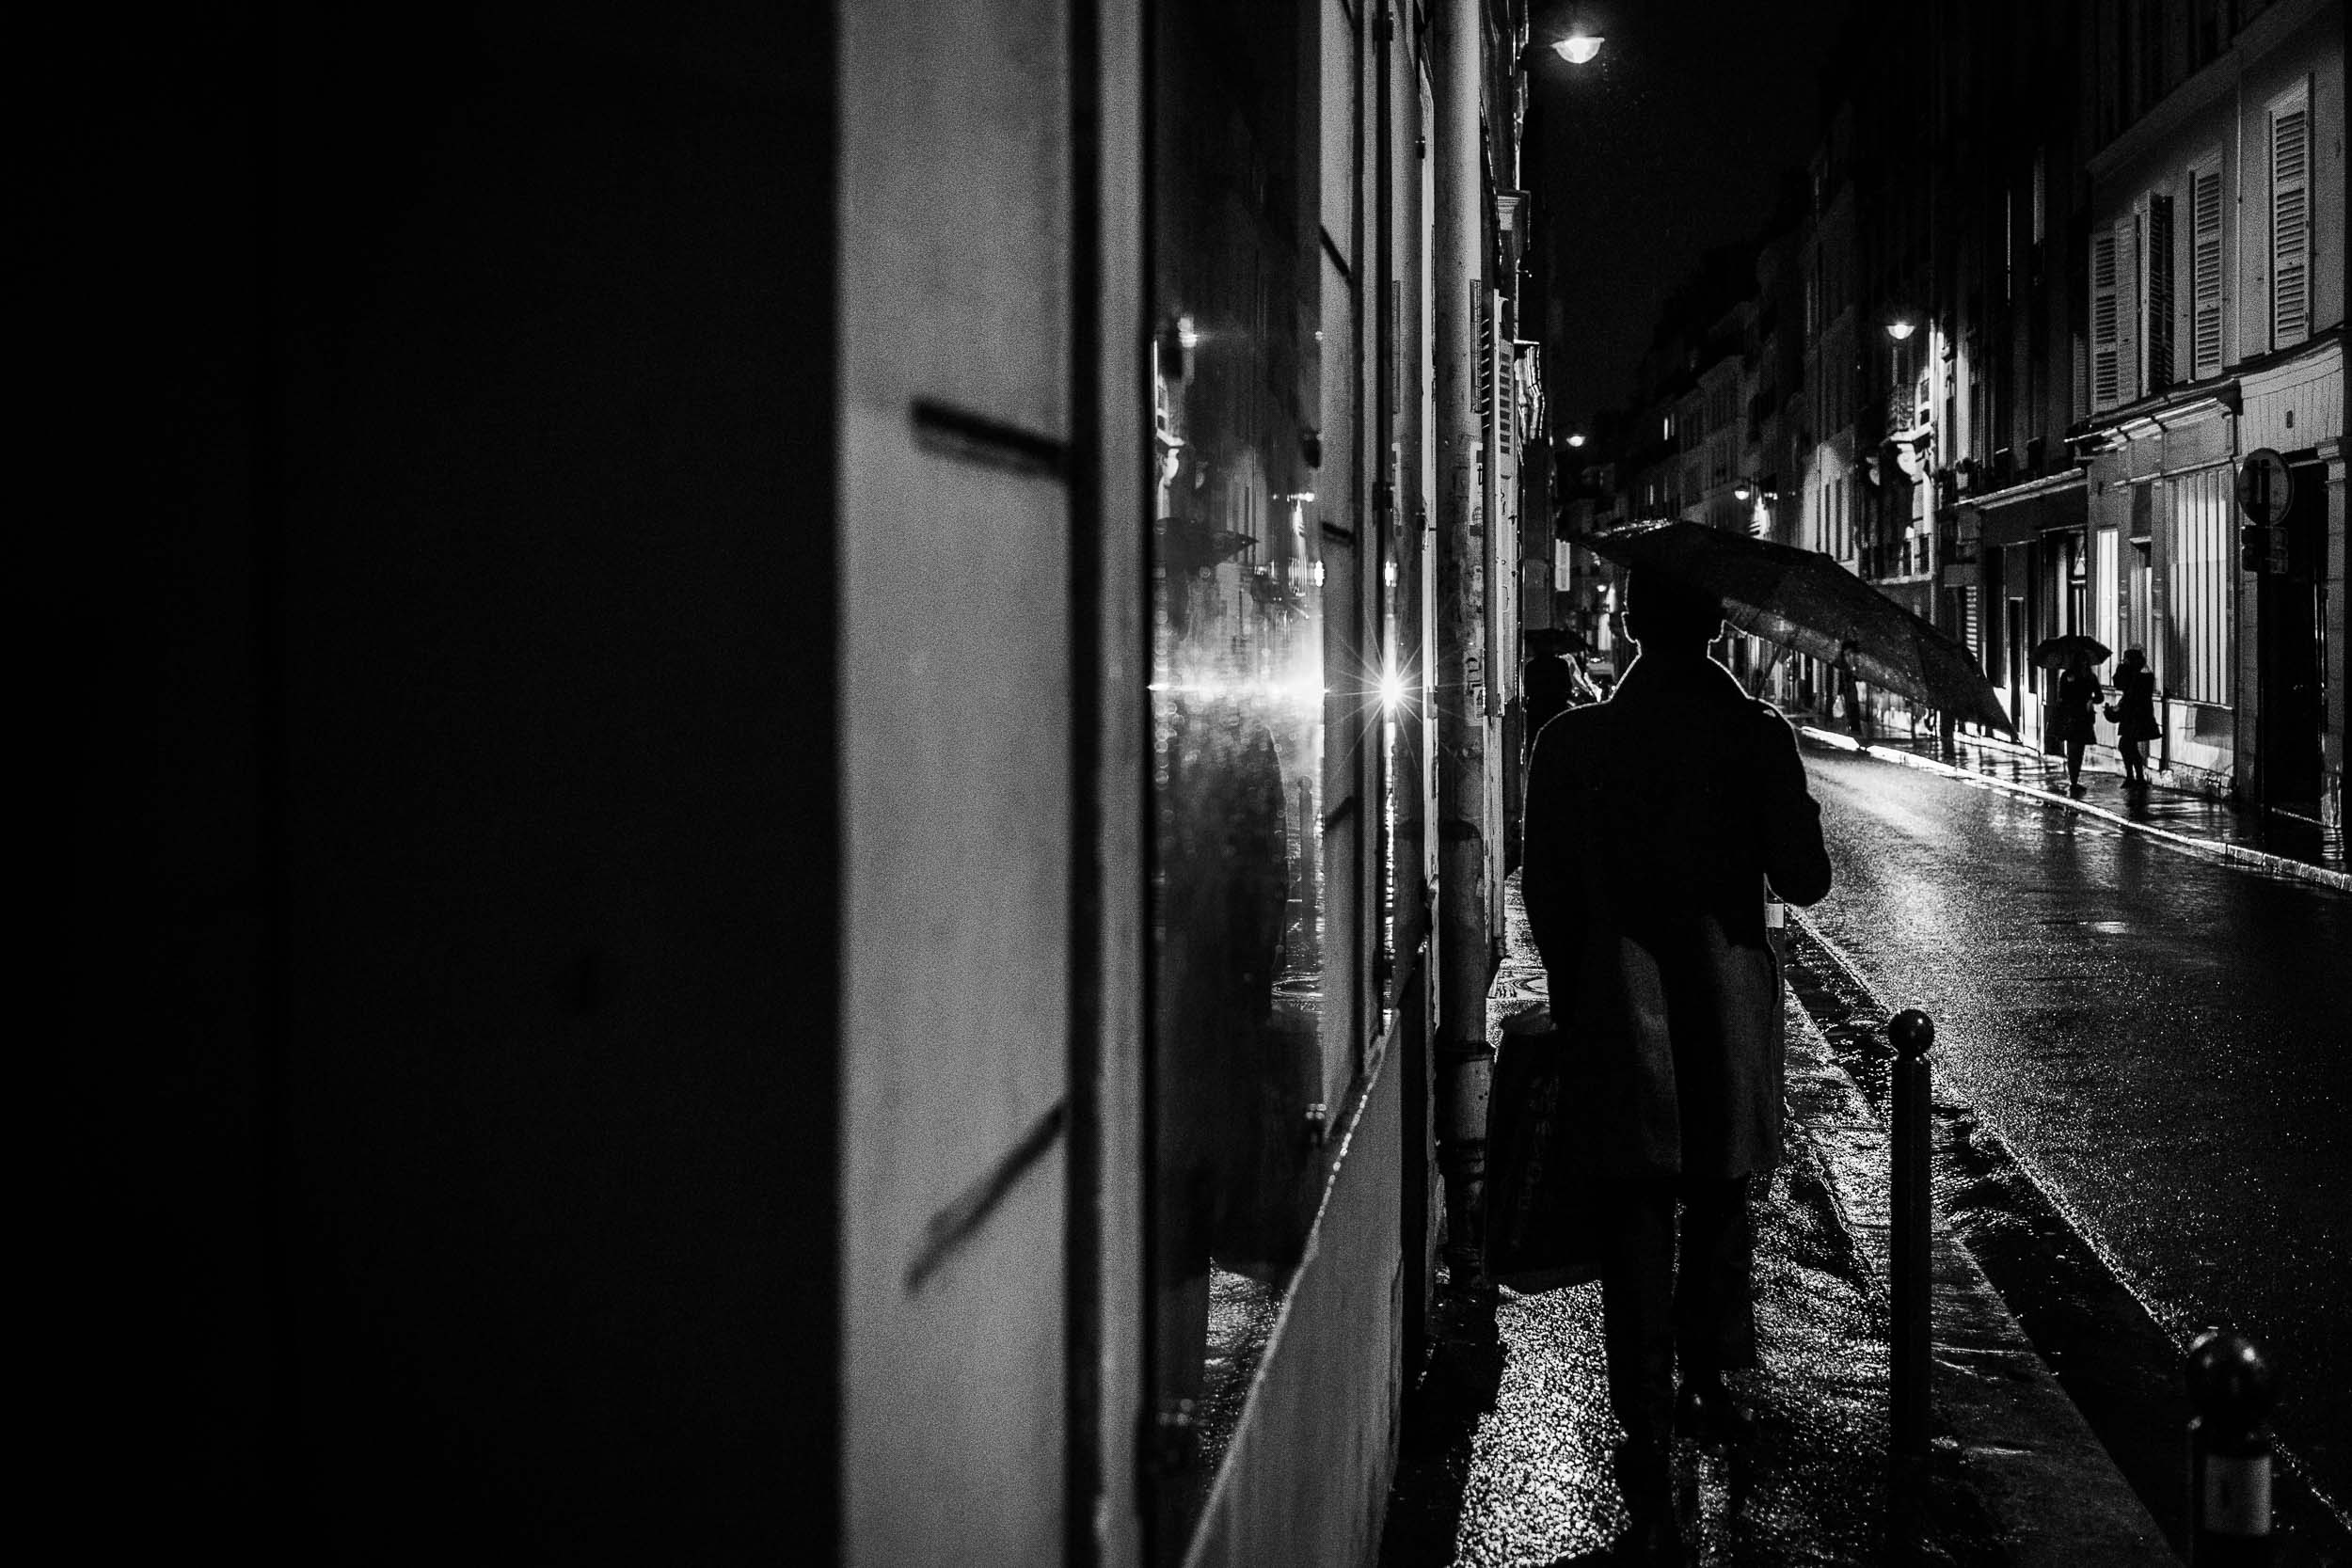 Paris-man-walking-with-umbrella-night.jpg